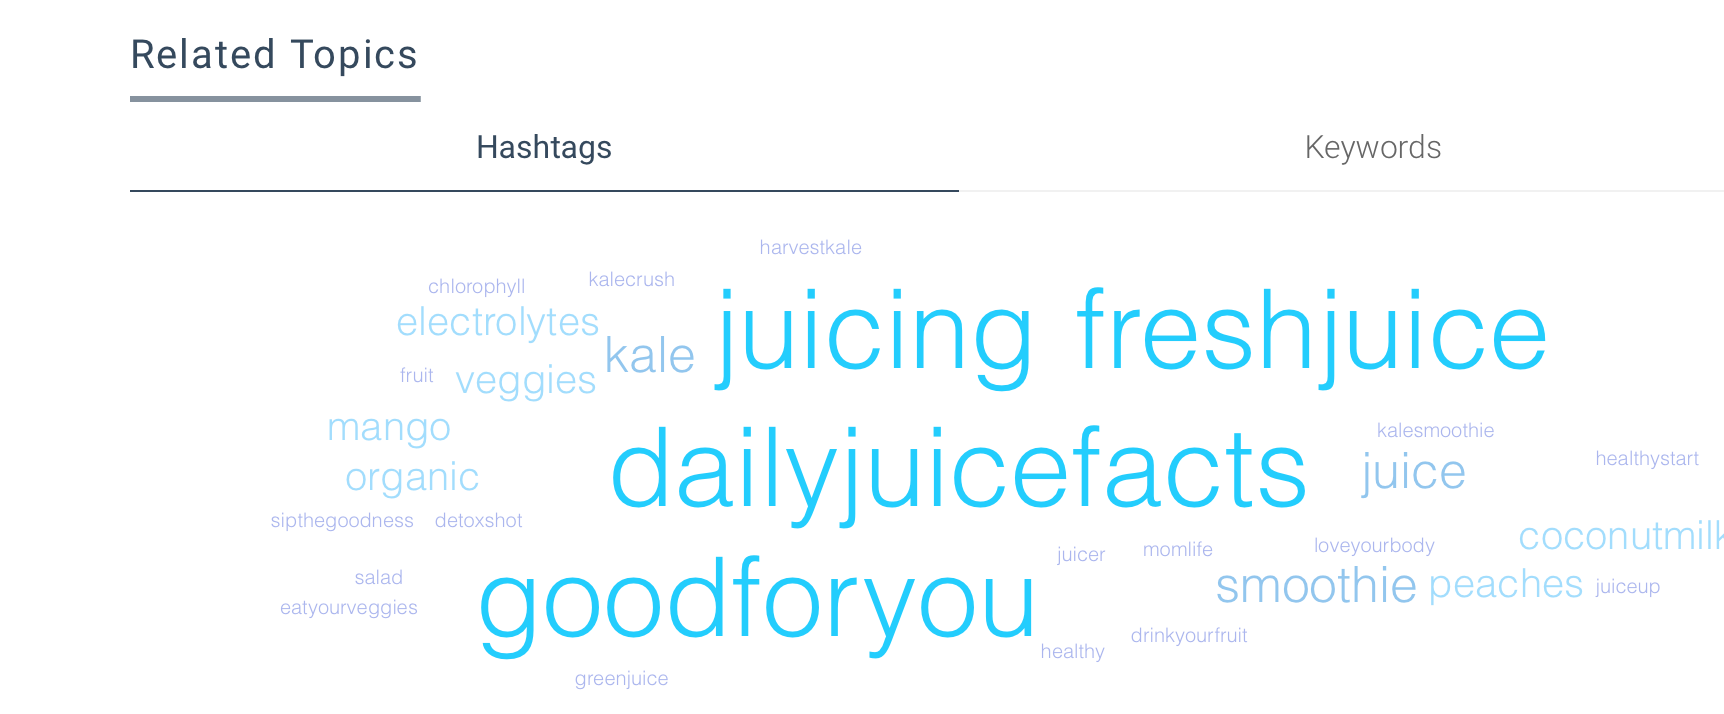 related hashtags